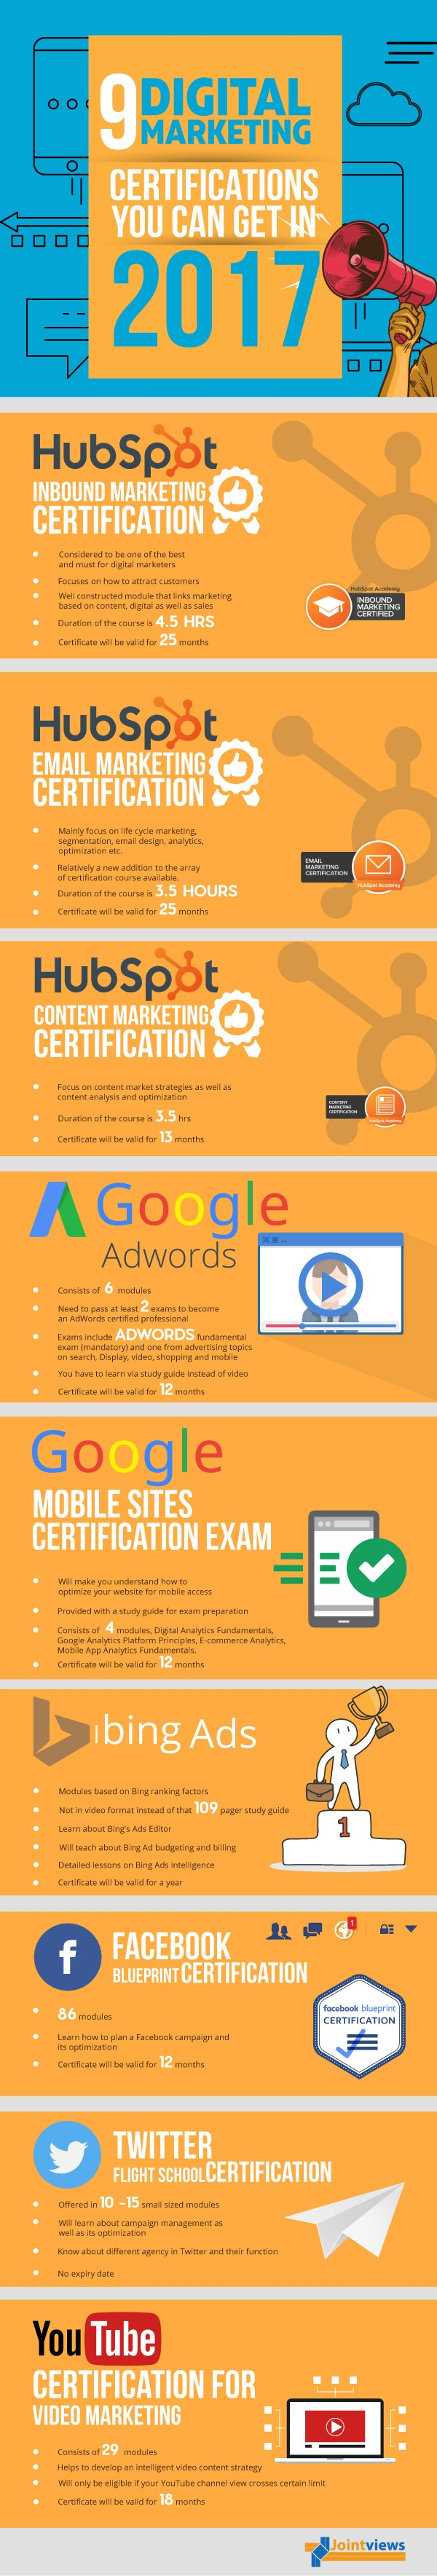 infographic digital marketing certifications certification why must visualistan acquire let which popular lists